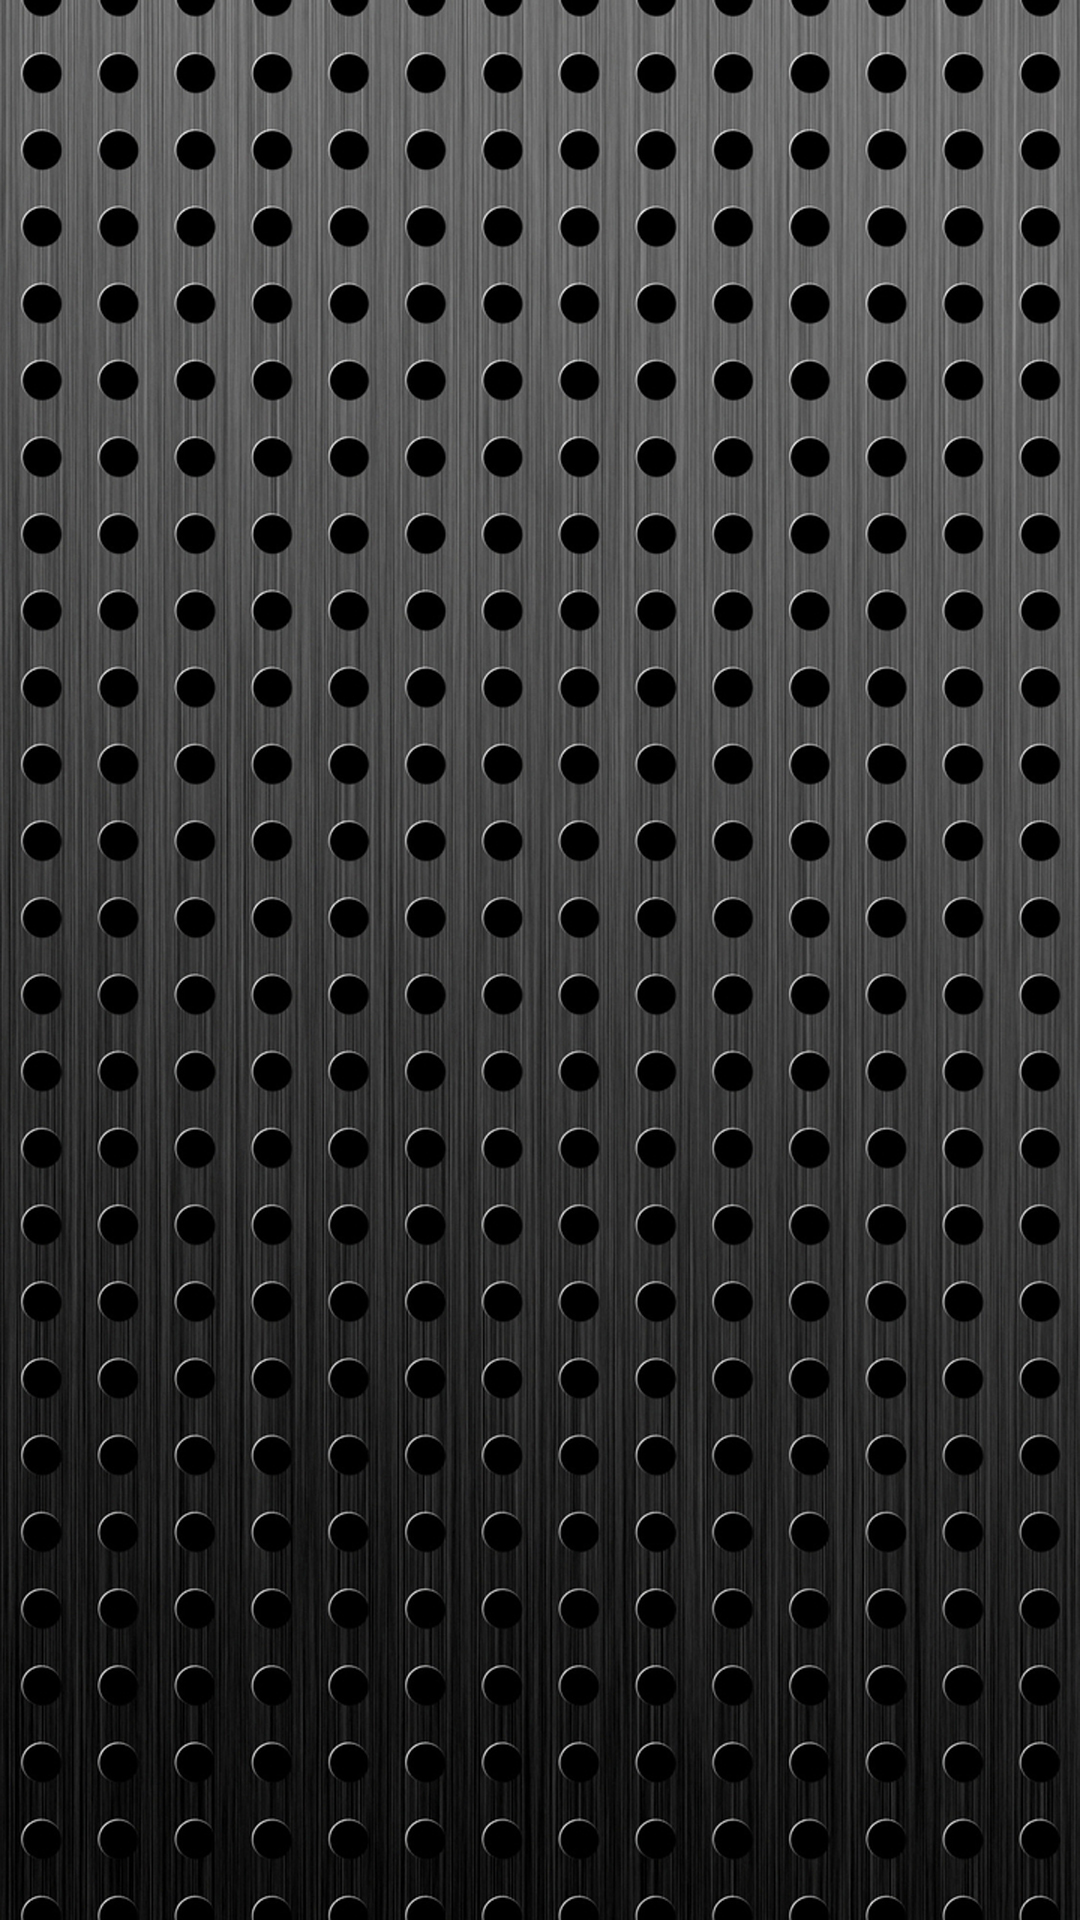 Metal htc one wallpaper best htc one wallpapers free and easy metal htc one wallpaper voltagebd Images